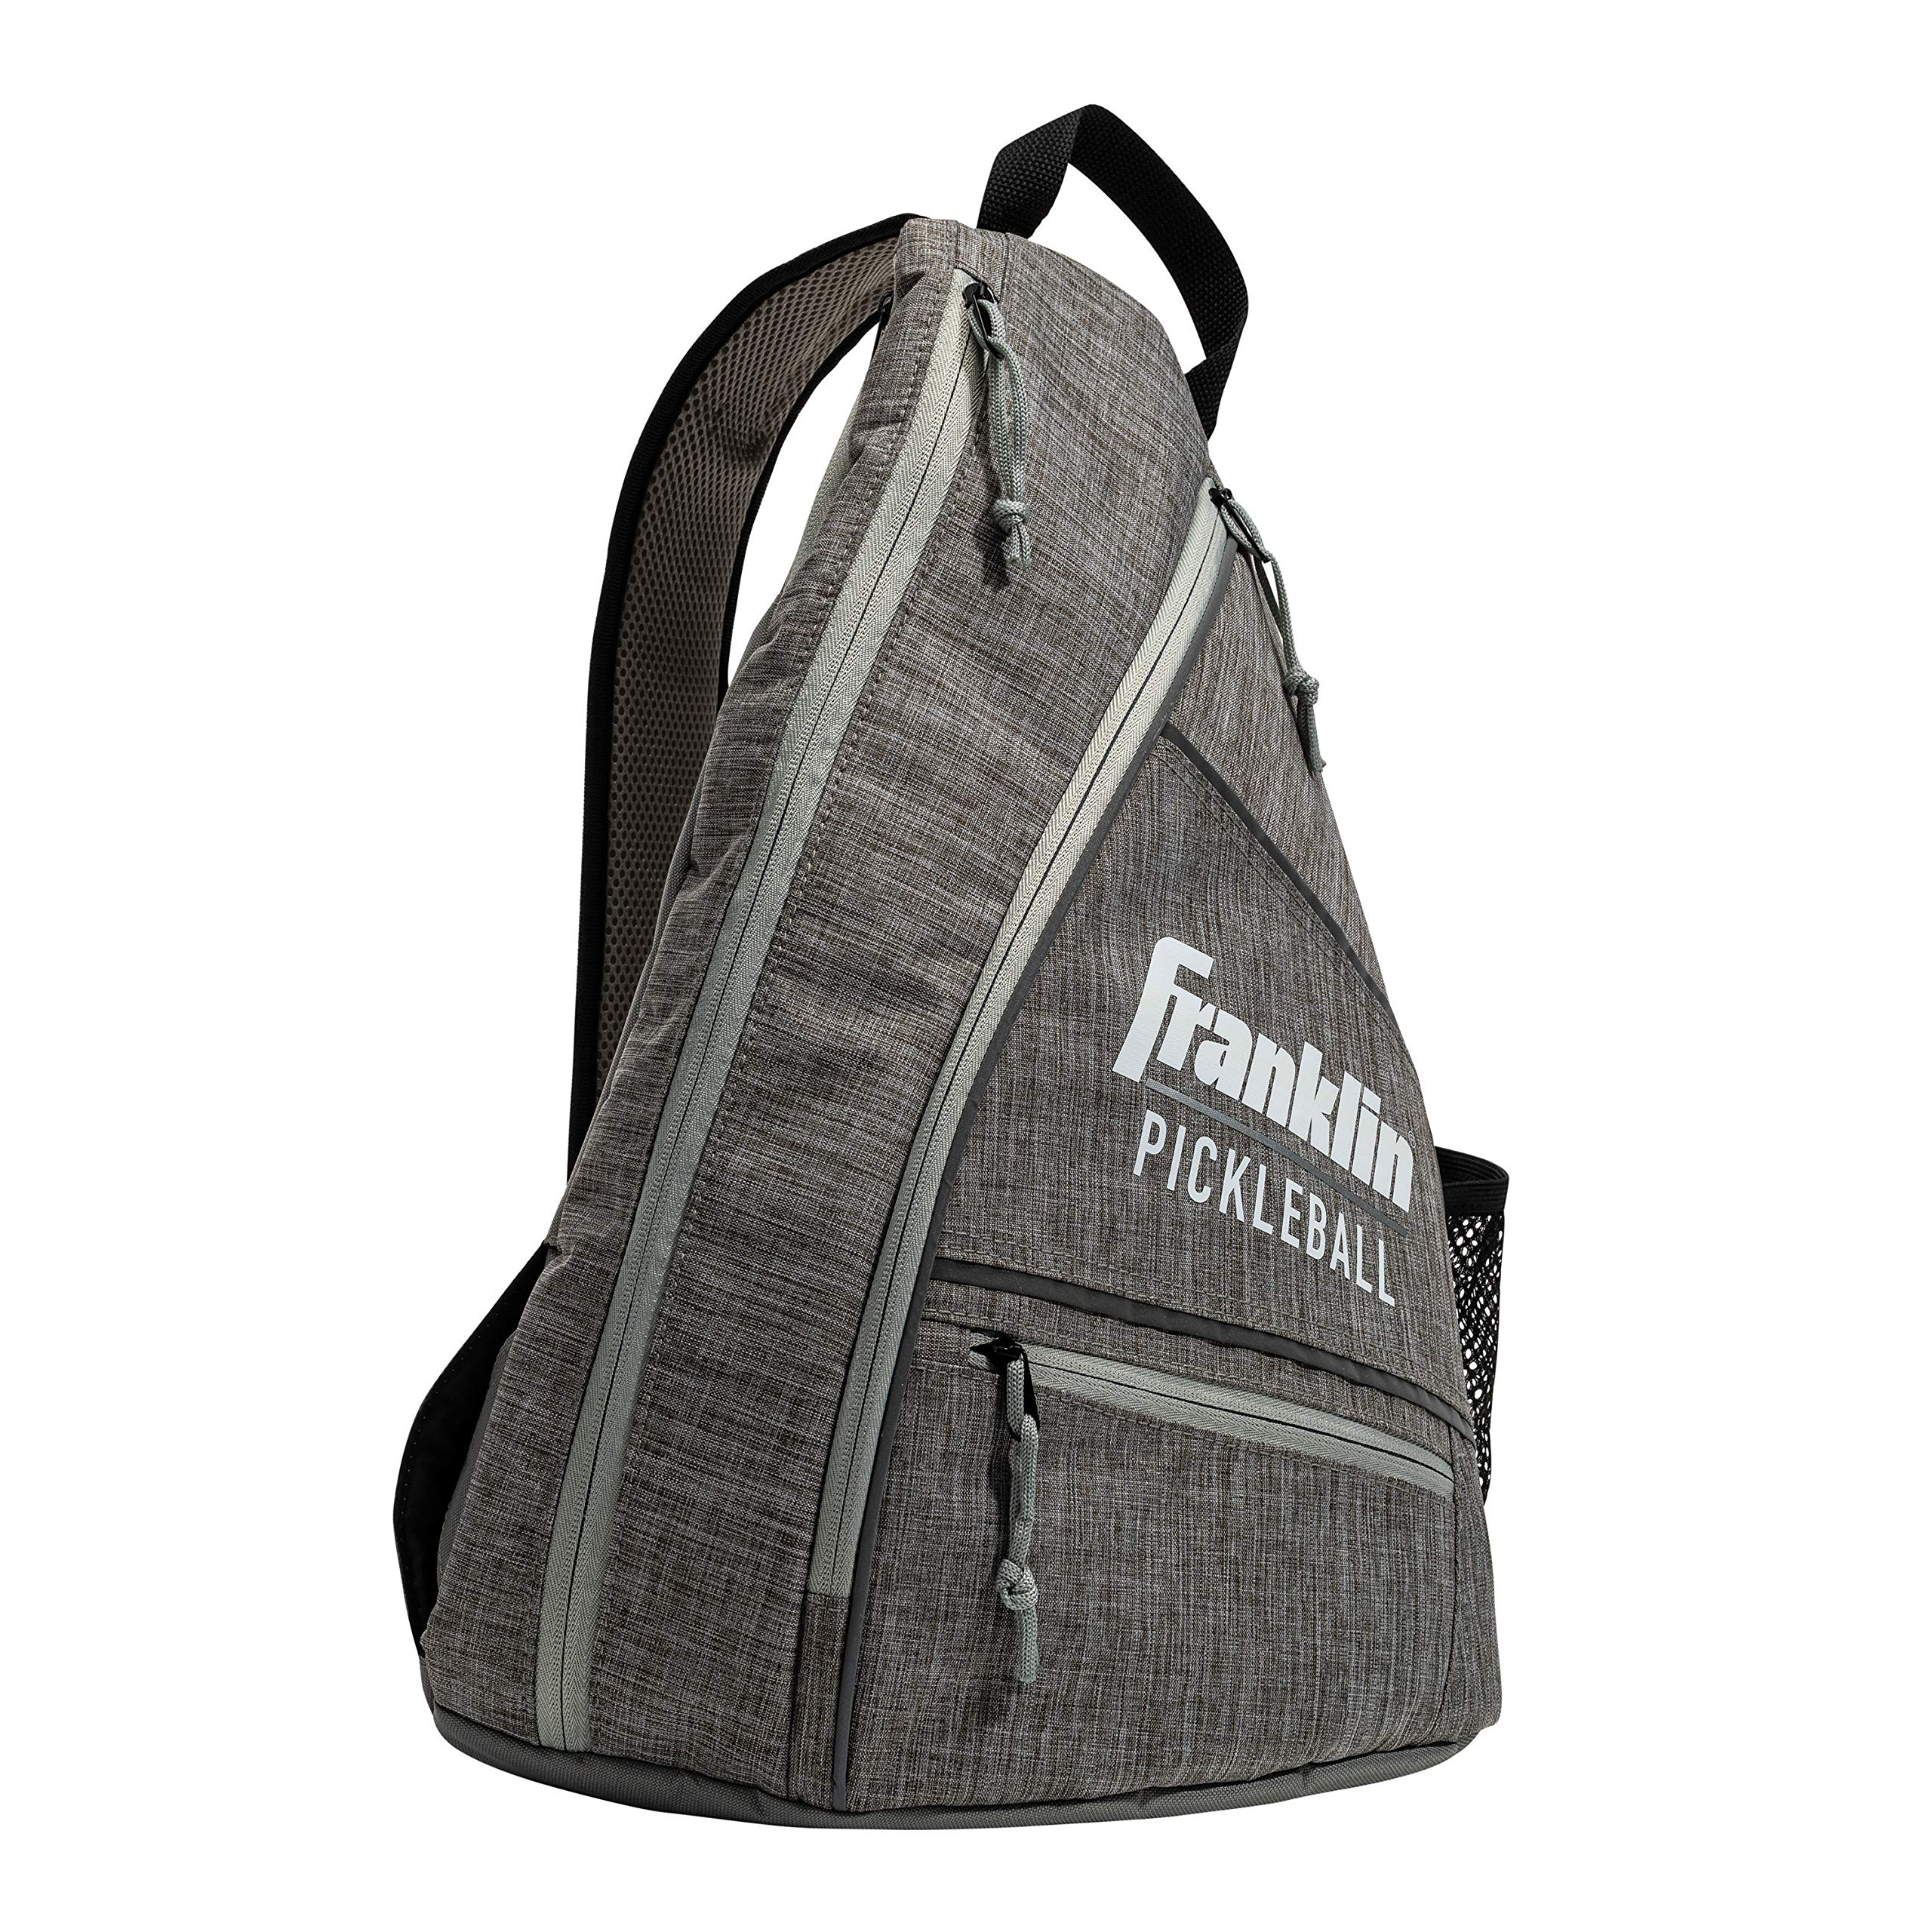 Franklin Sports Pickleball Bag - Men's and Women's Pickleball Backpack - Adjustable Sling Bag - Official Bag of U.S Open Pickleball Championships - Gray/Gray by Franklin Sports